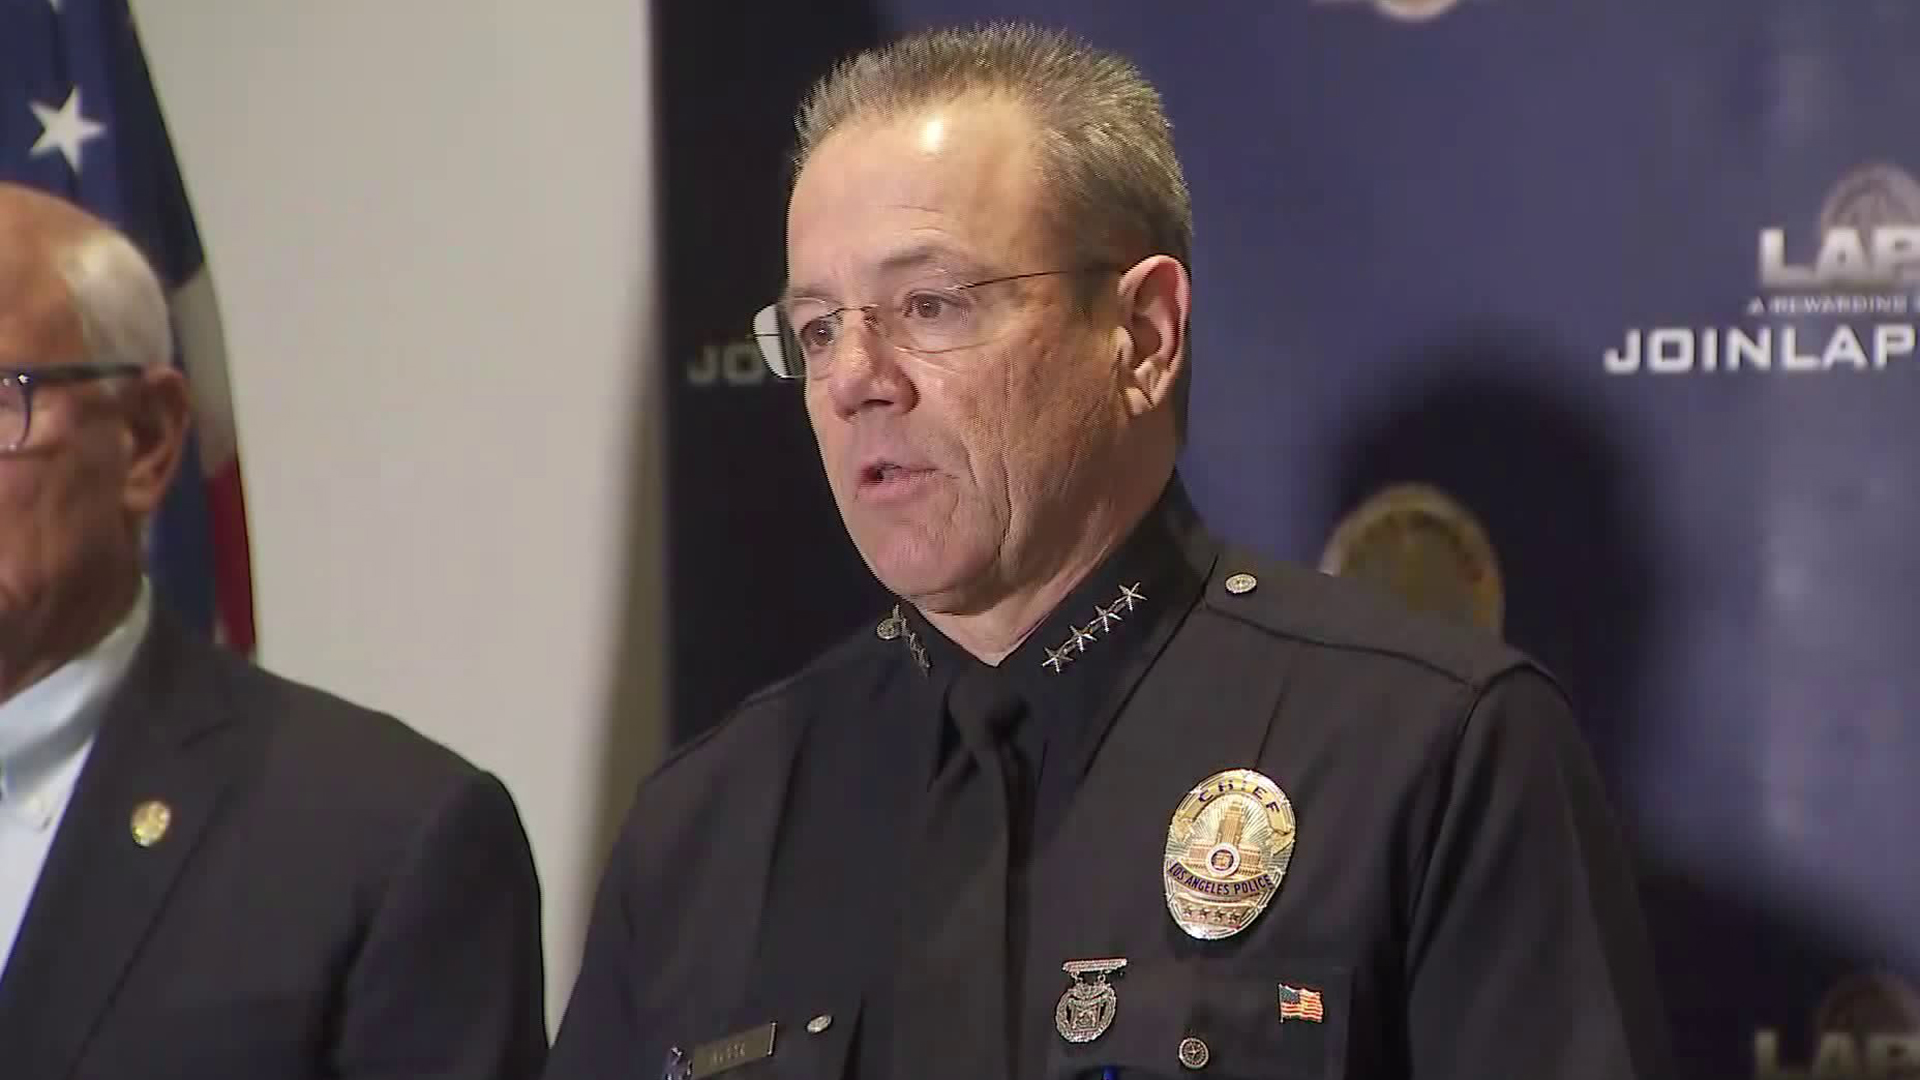 LAPD Chief Michel Moore speaks at a news conference on Jan. 28, 2019. (Credit: KTLA)